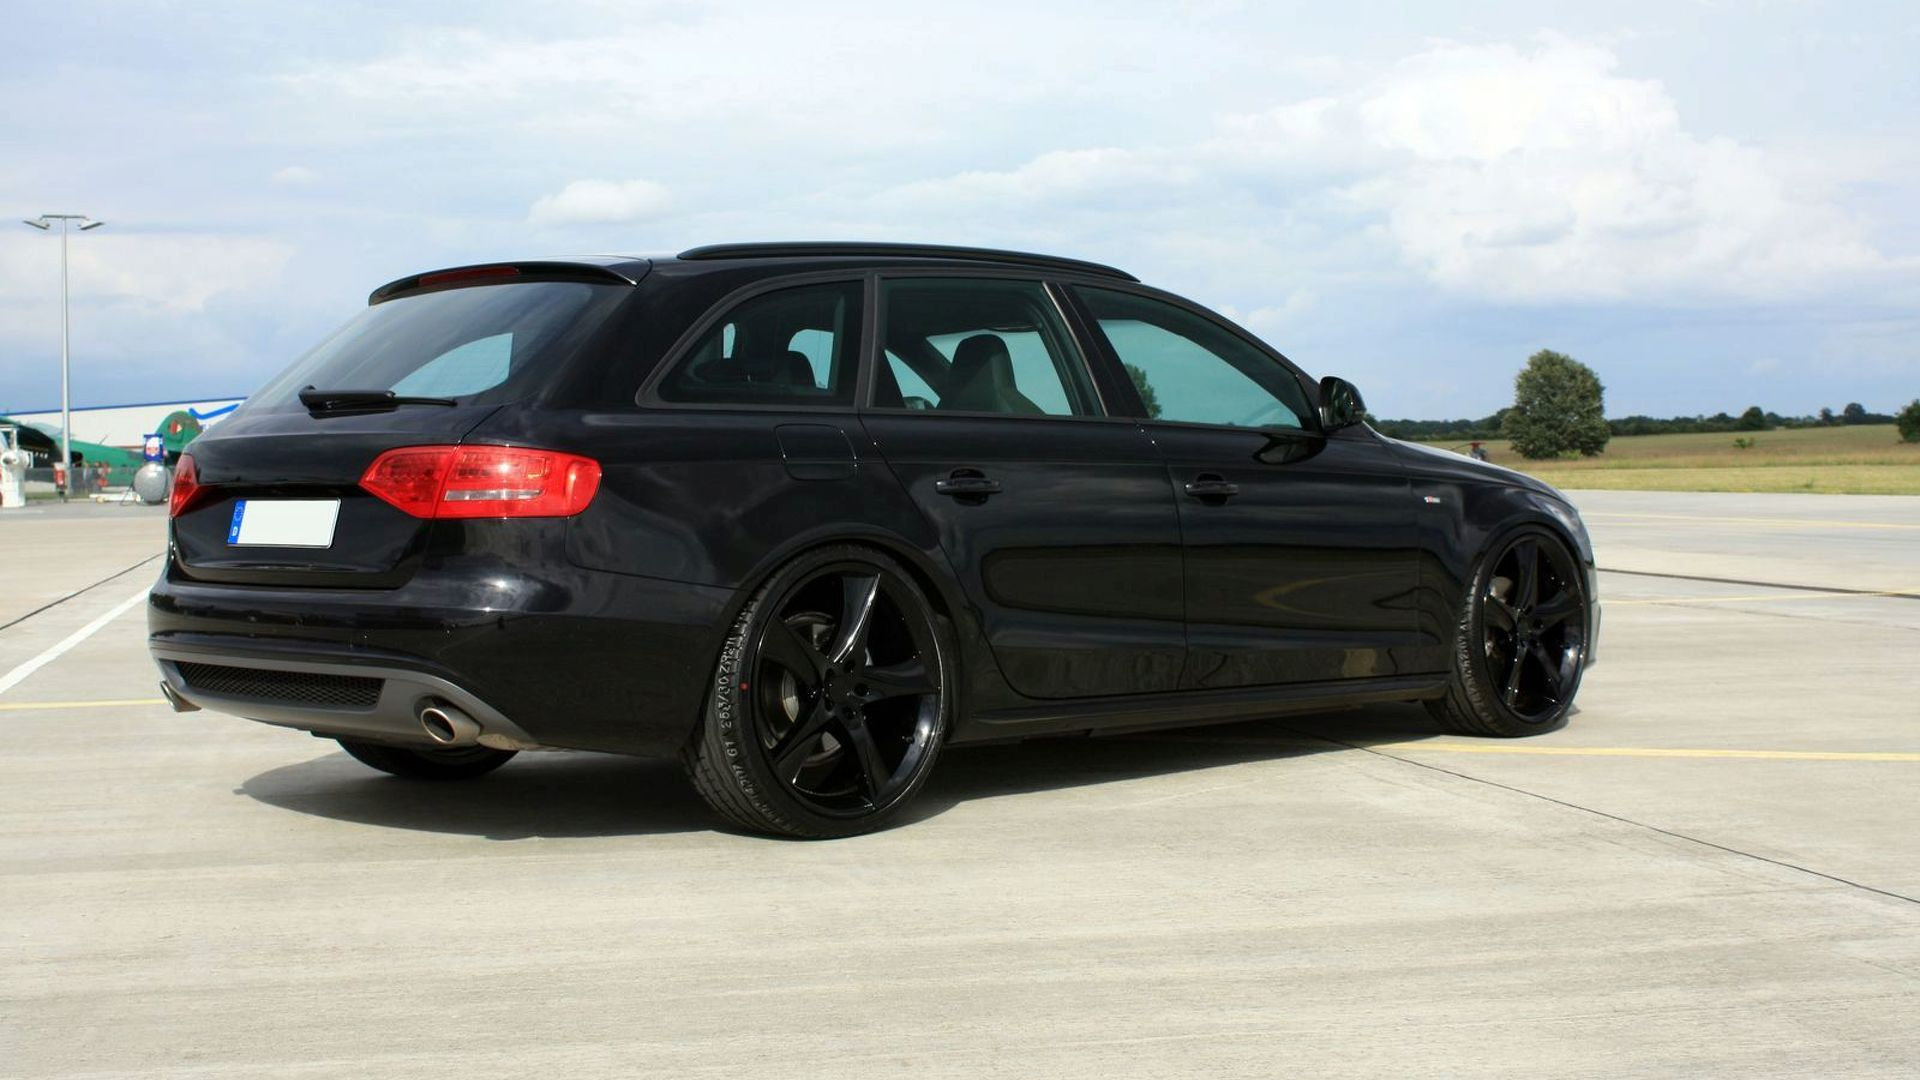 Avus Performance Black Arrow Based On Audi A4 Avant